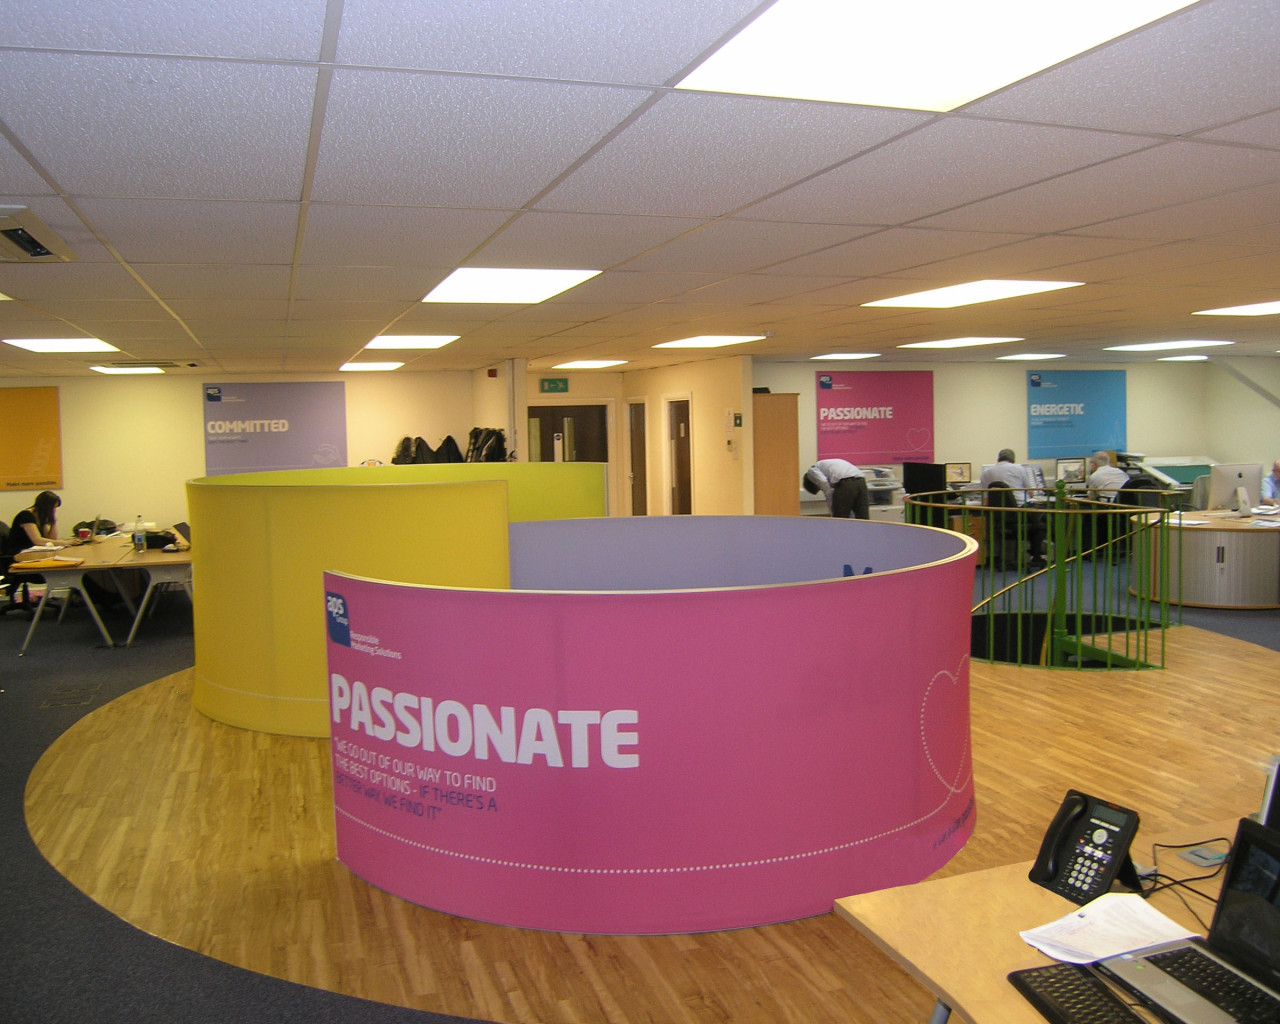 Office fit out North Wales, Queensferry, Colwyn, Wrexham, Flint.